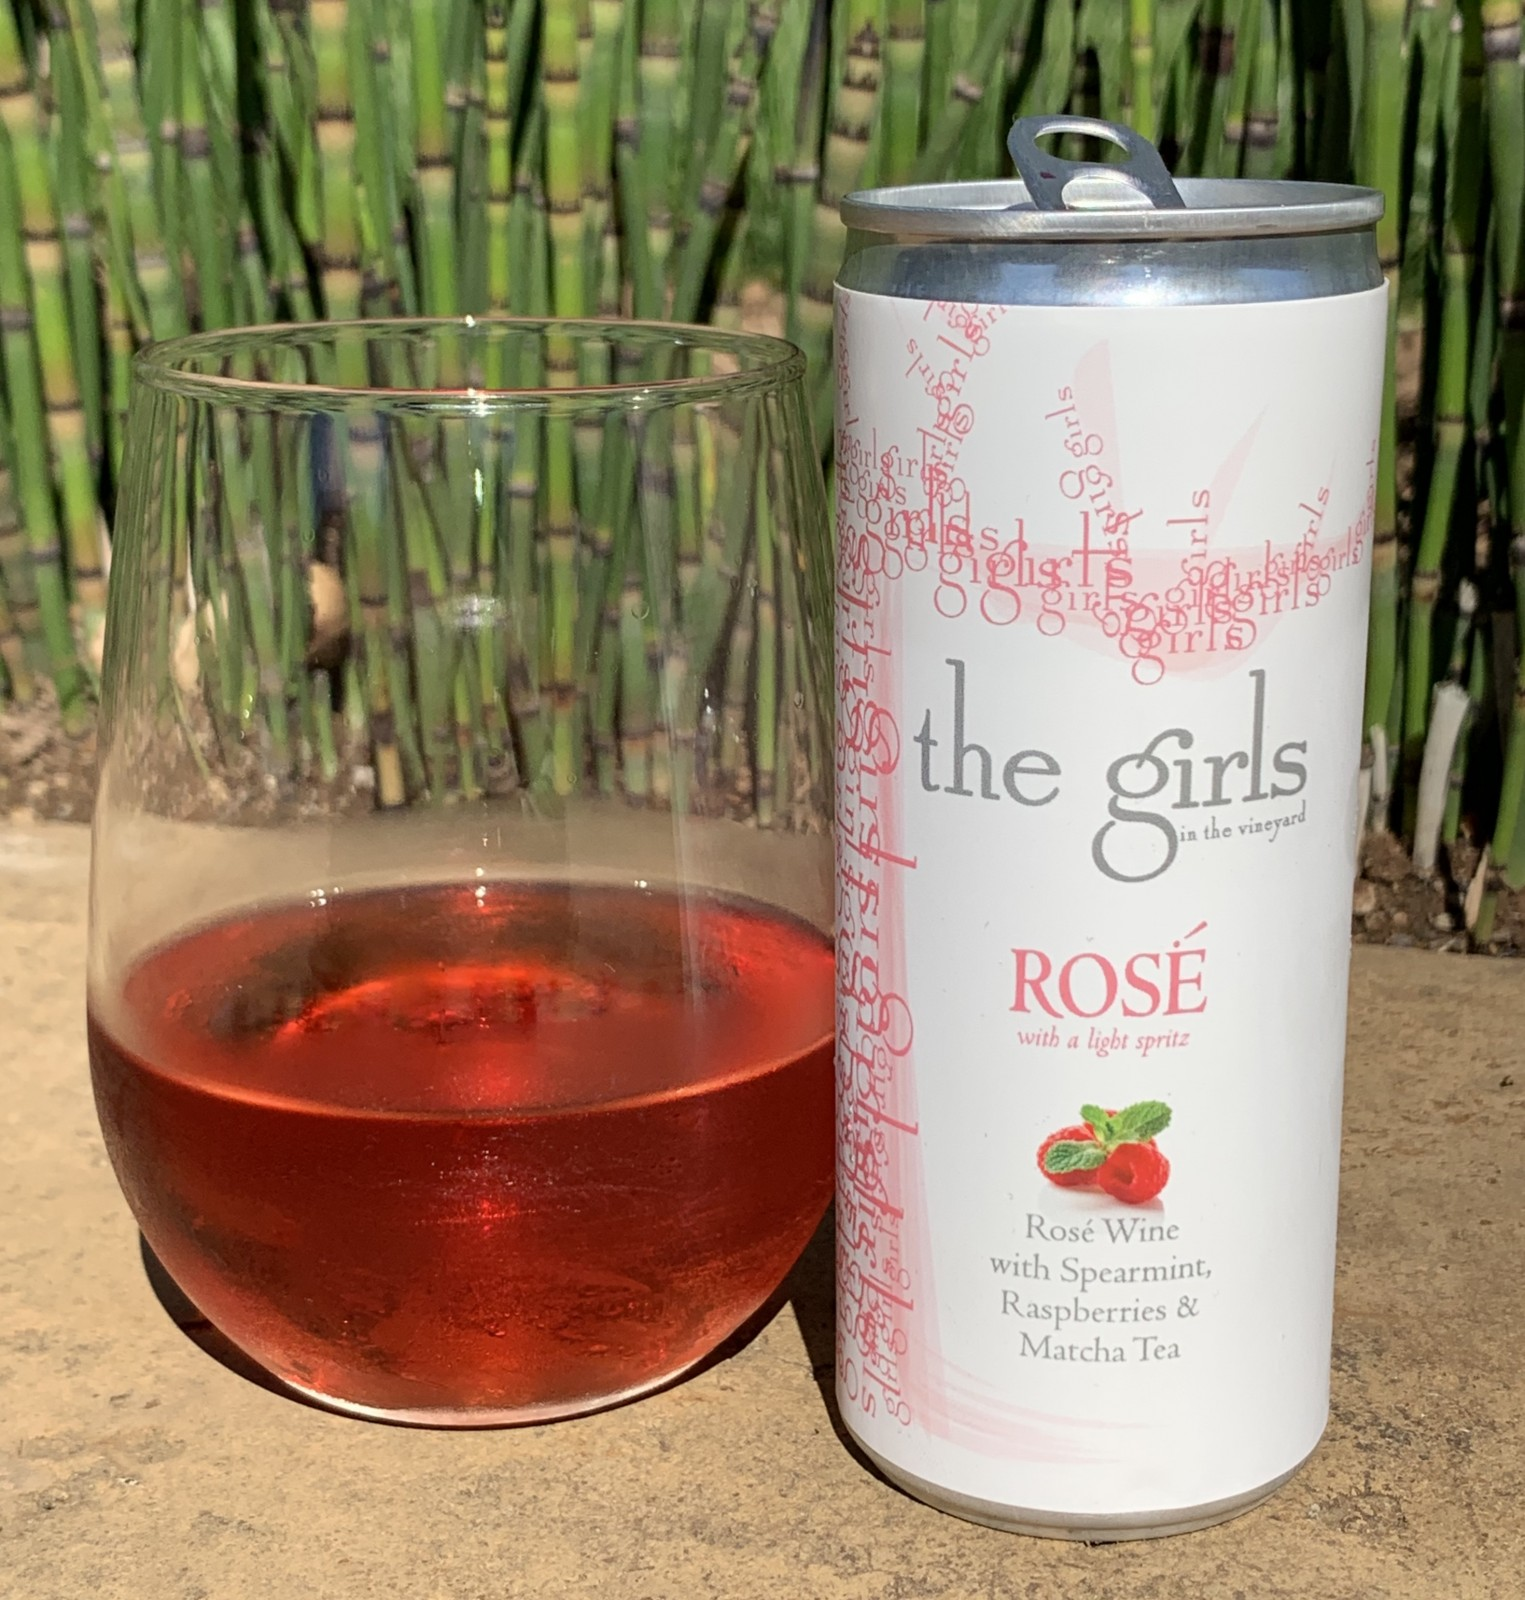 Making a Case - the girls ROSÉ 24 x 250ml the girls ROSÉ cans  - Art+Farm Wine